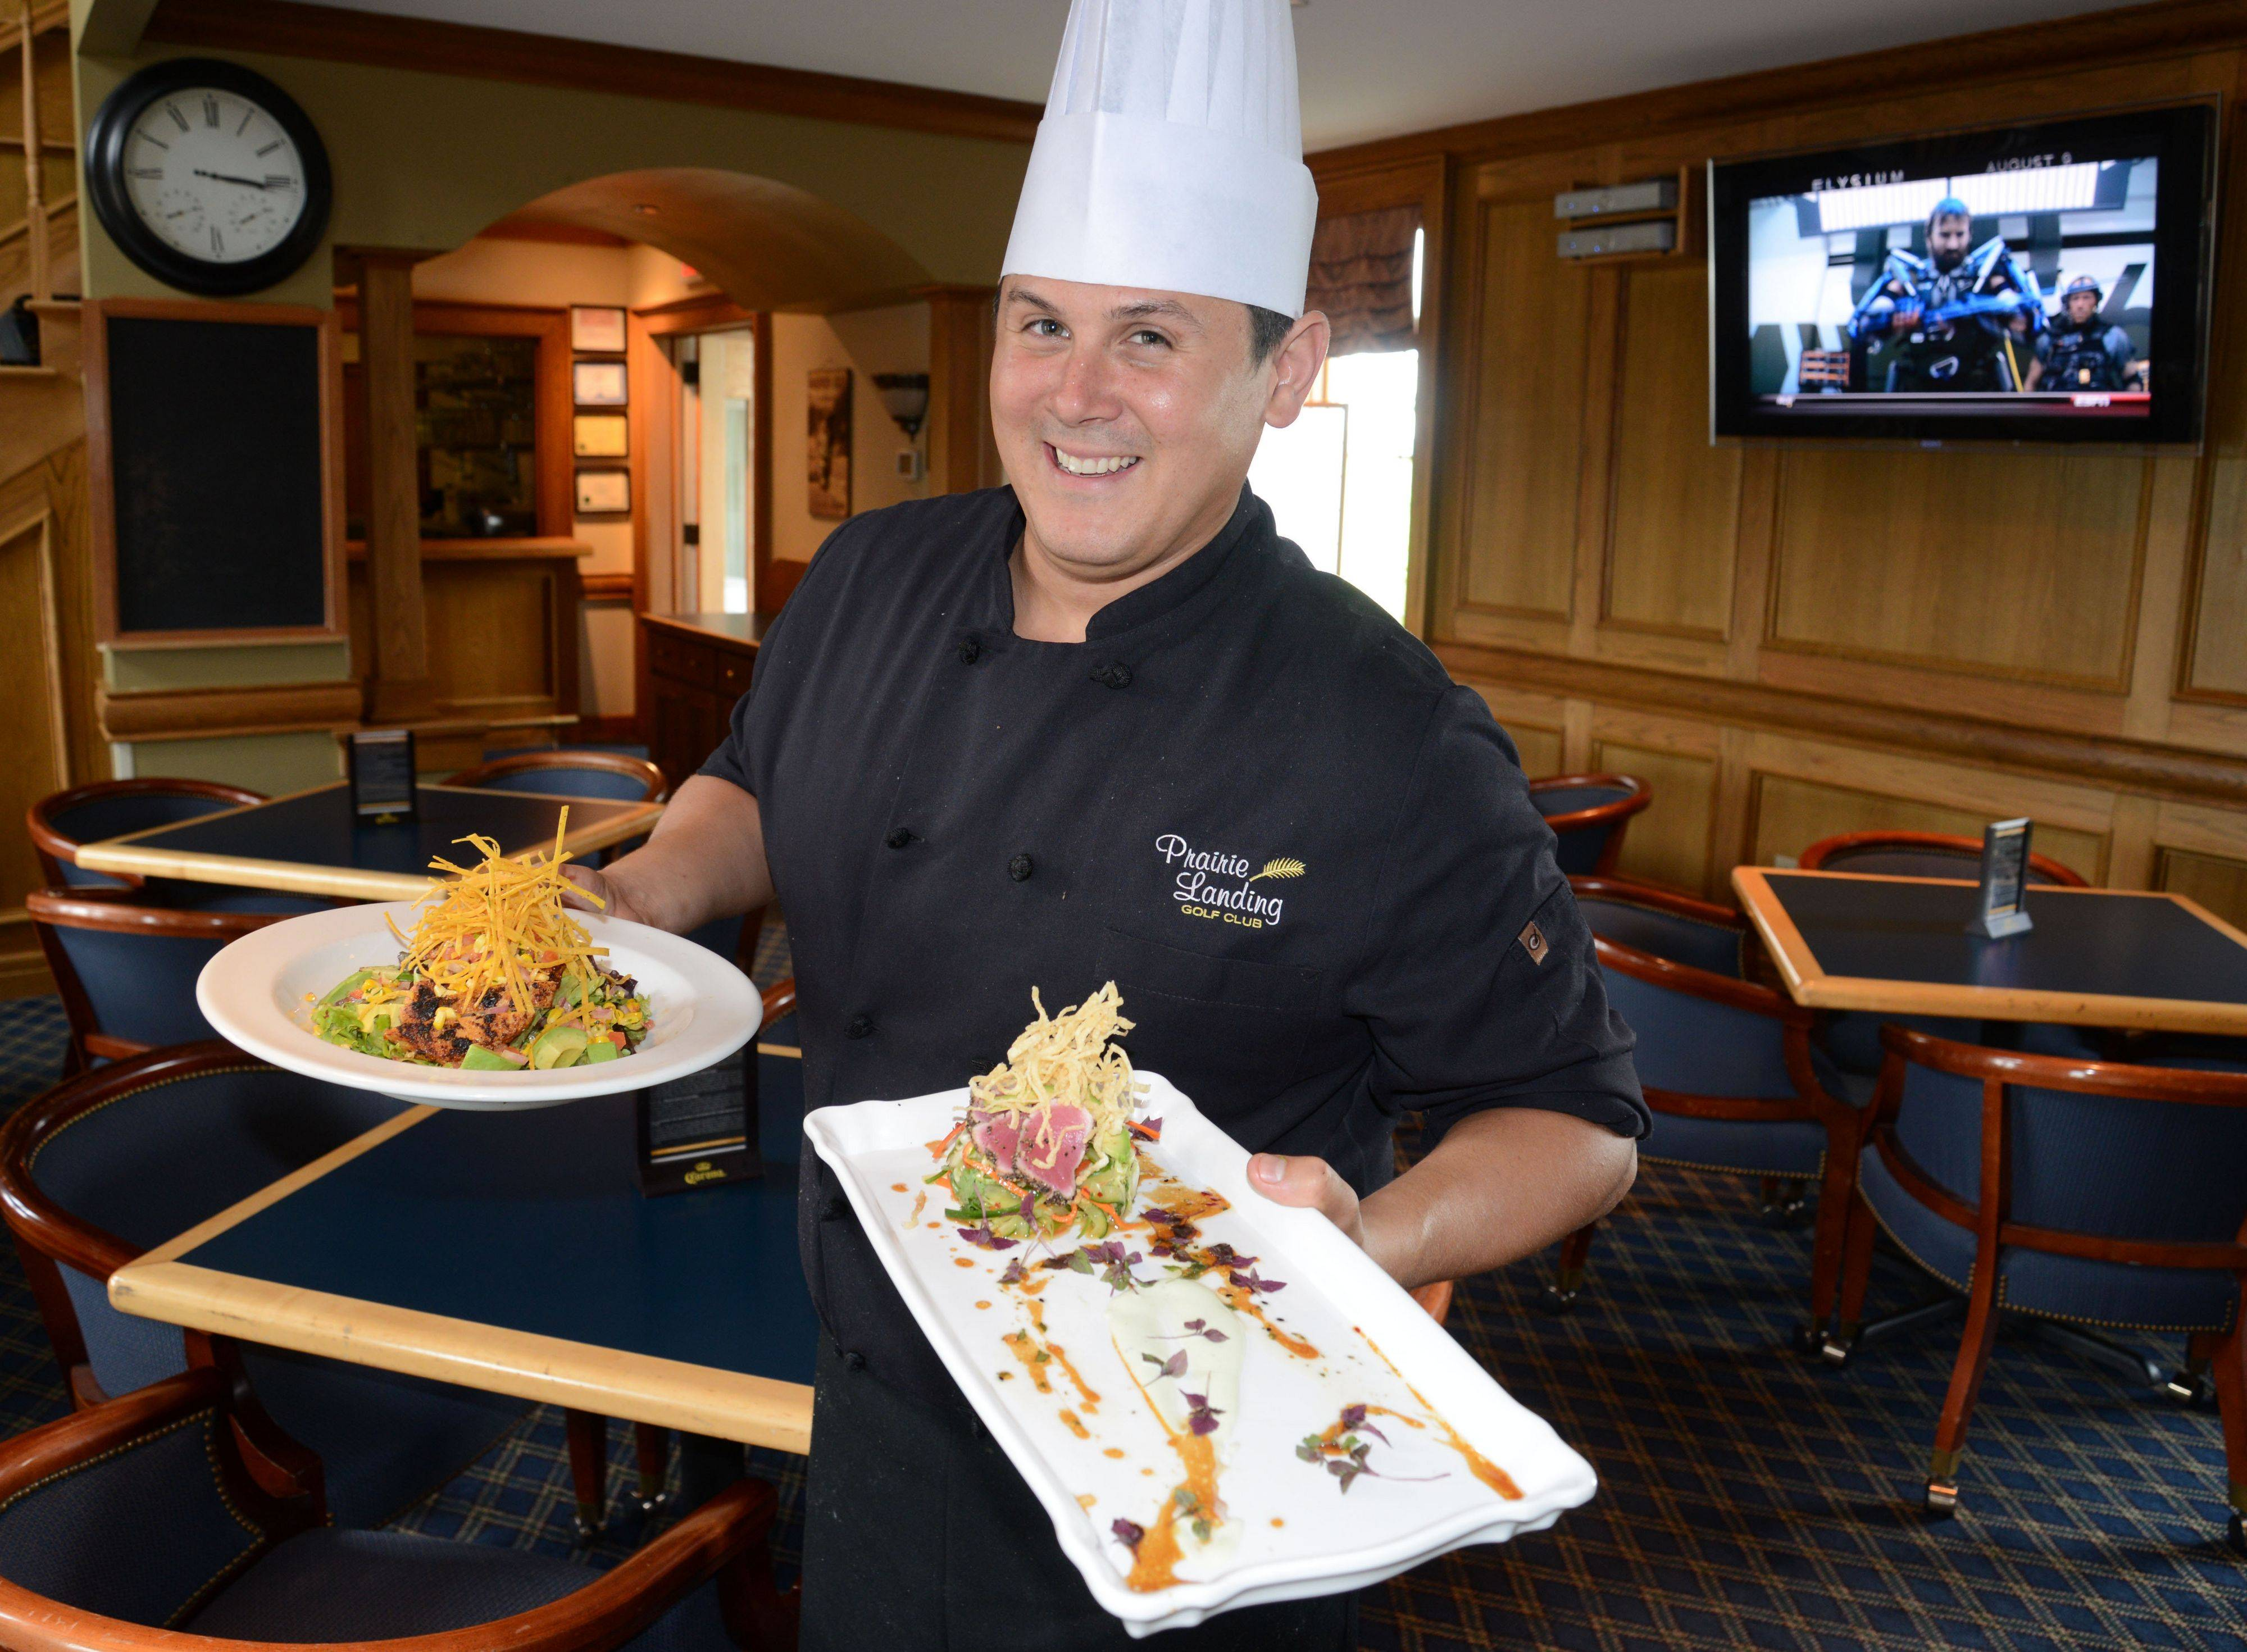 Chef Gregory Anetsberger executes the menu at McChesney's Pub & Grill at Prairie Landing Golf Club in West Chicago.